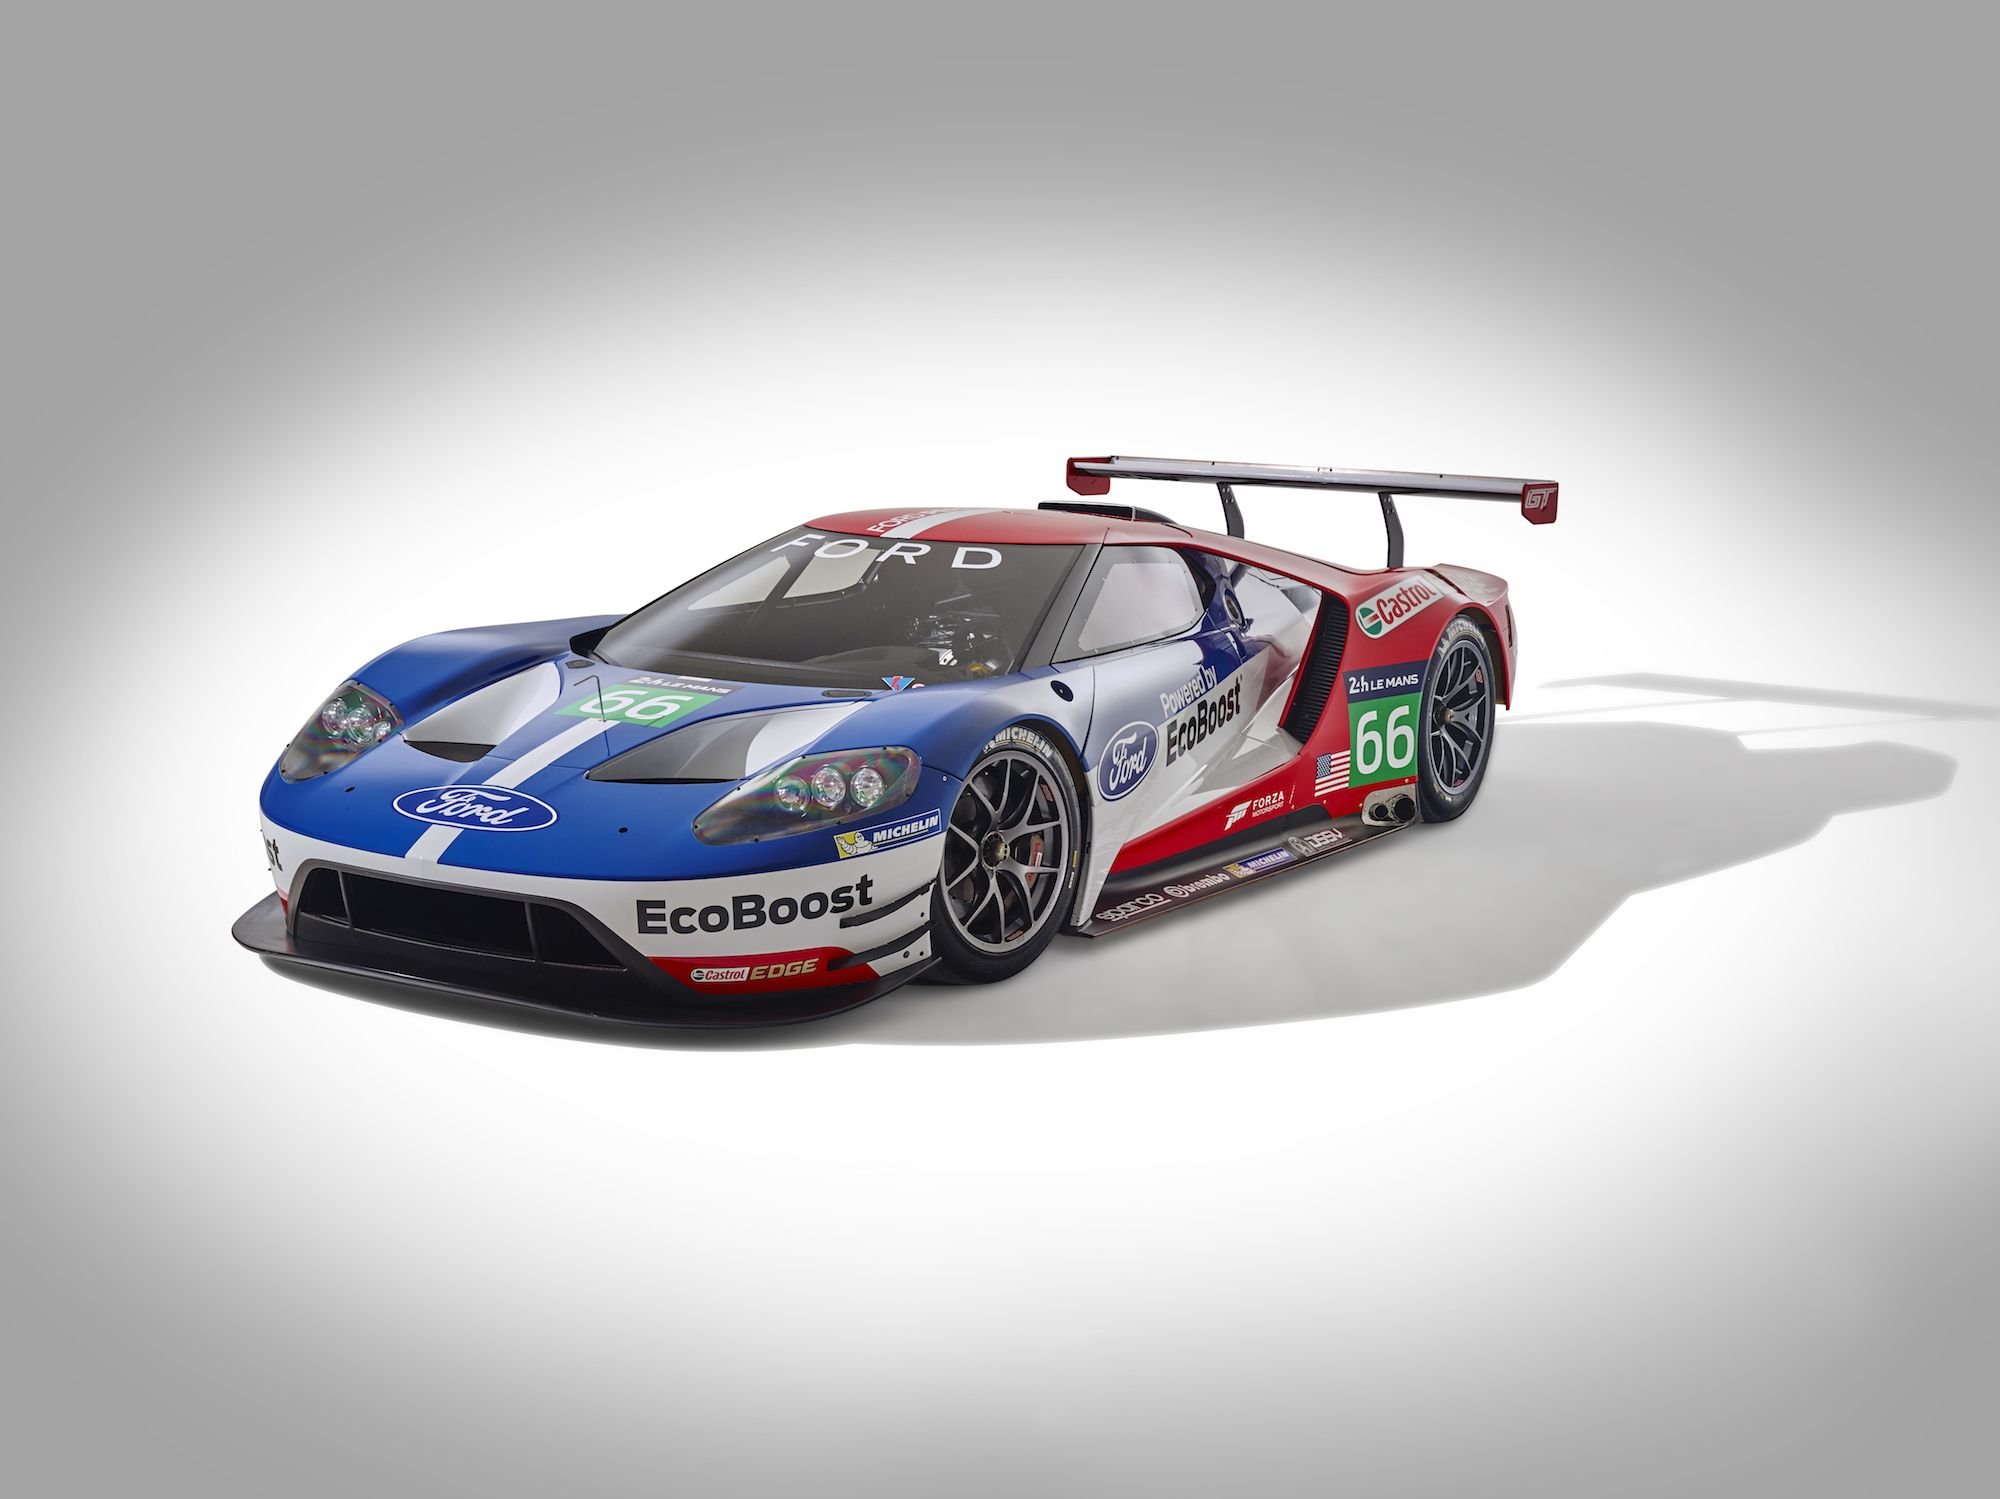 Ford Gt Returns To The 24 Hours Of Le Mans After Fifty Years Video Motoringview Ford Gt Ford Gt Le Mans Ford Racing